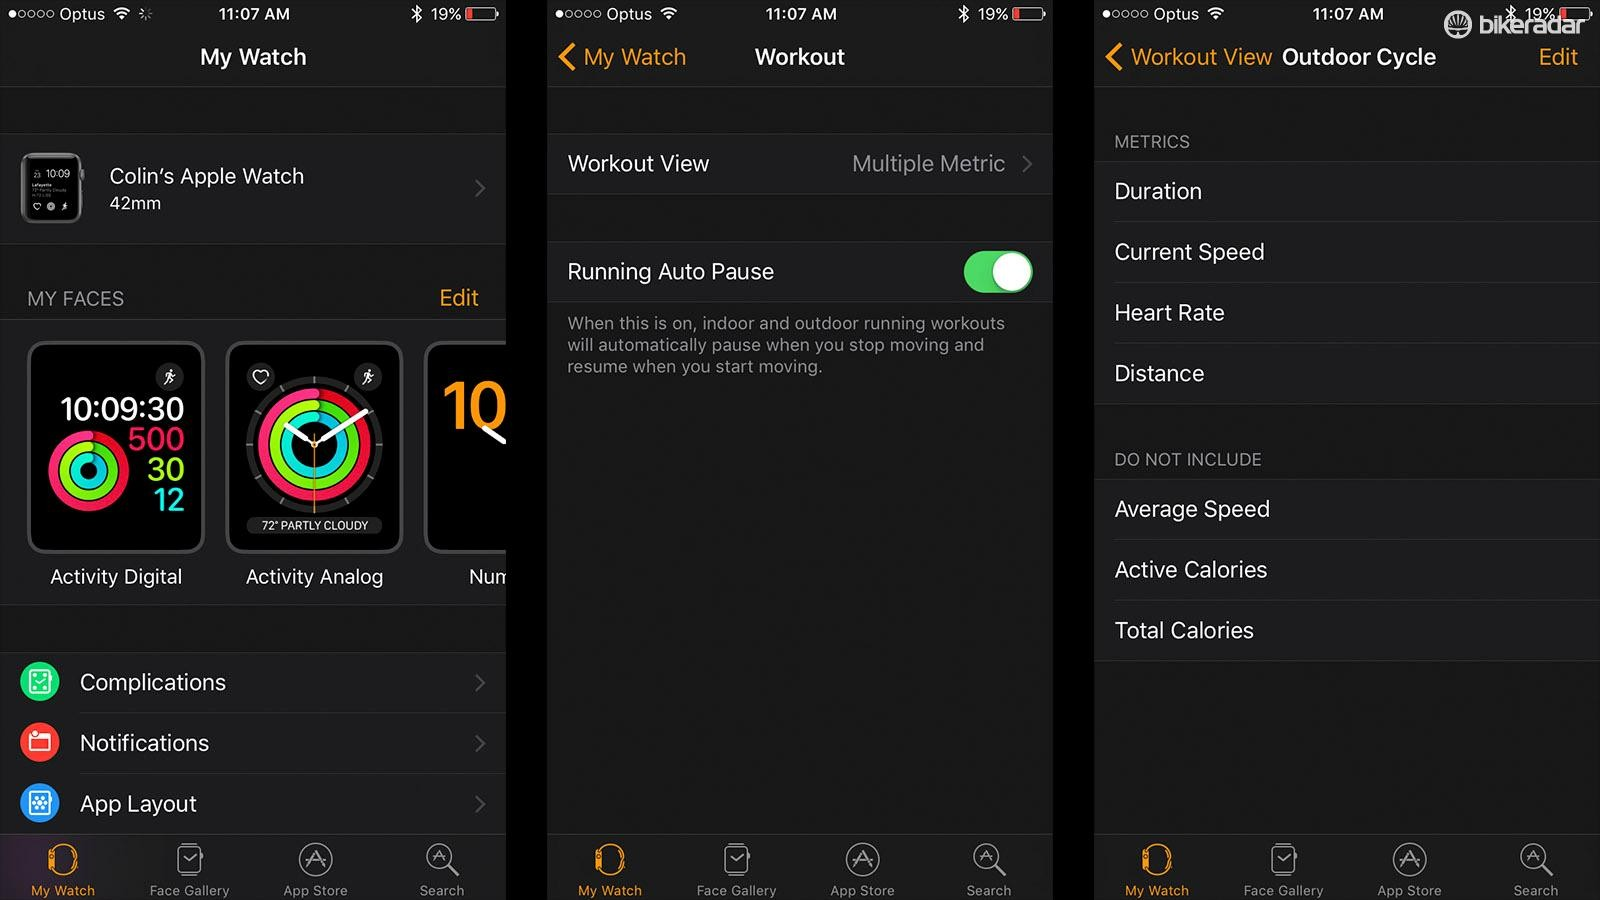 The watch app is just like the settings menu on your phone. It allows you to customise watch faces, change notification settings, choose which apps are showing and change settings within the apps